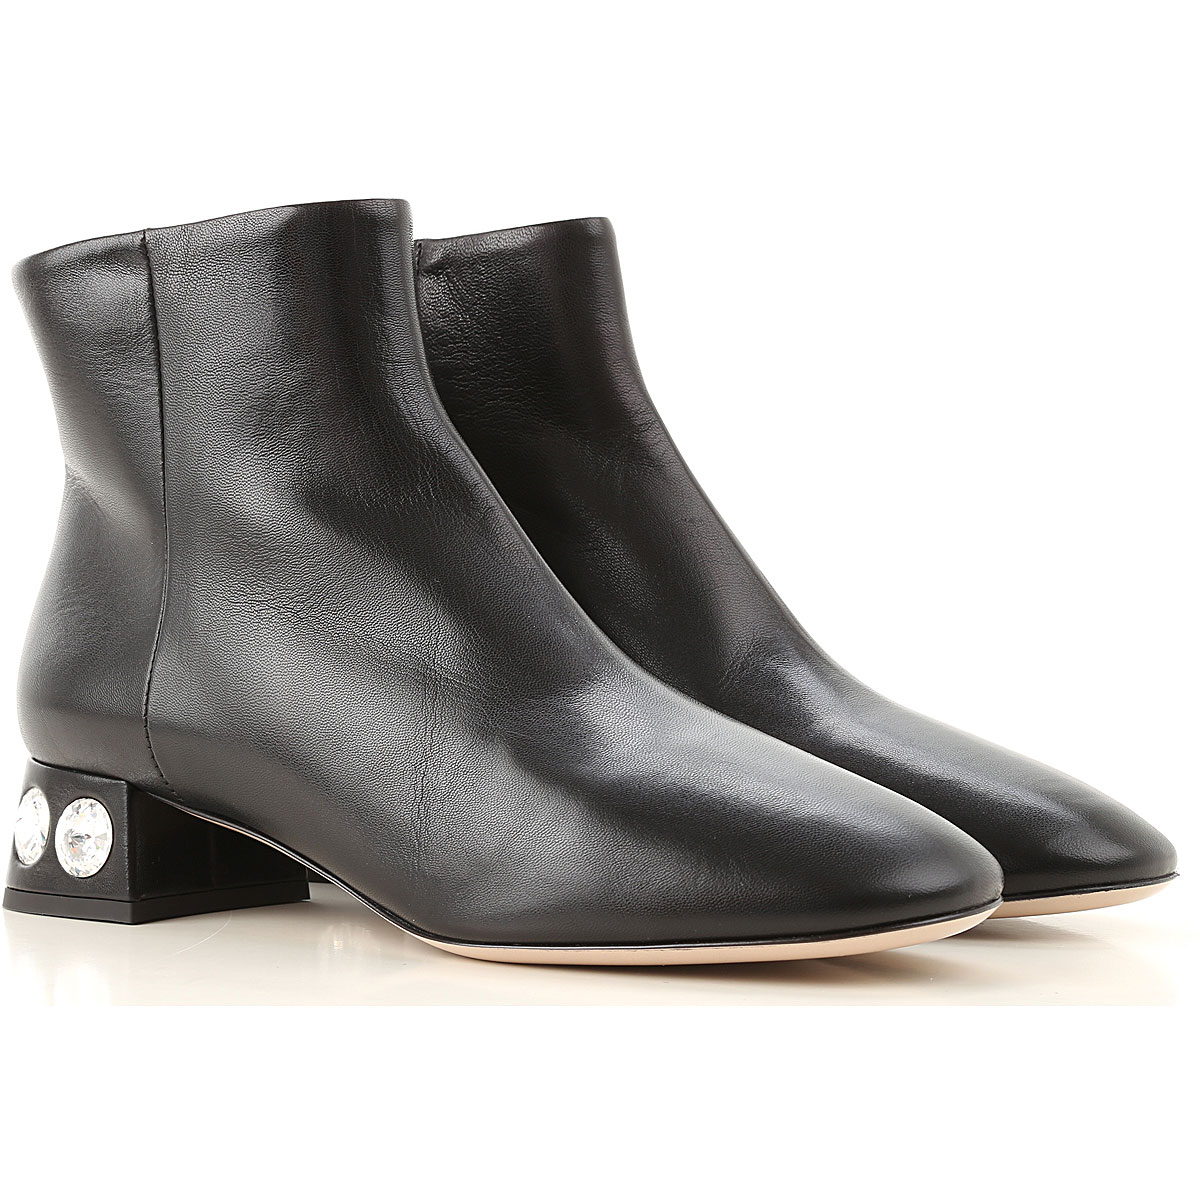 Miu Miu Boots for Women, Booties On Sale, Black, Leather, 2019, 10 5 6